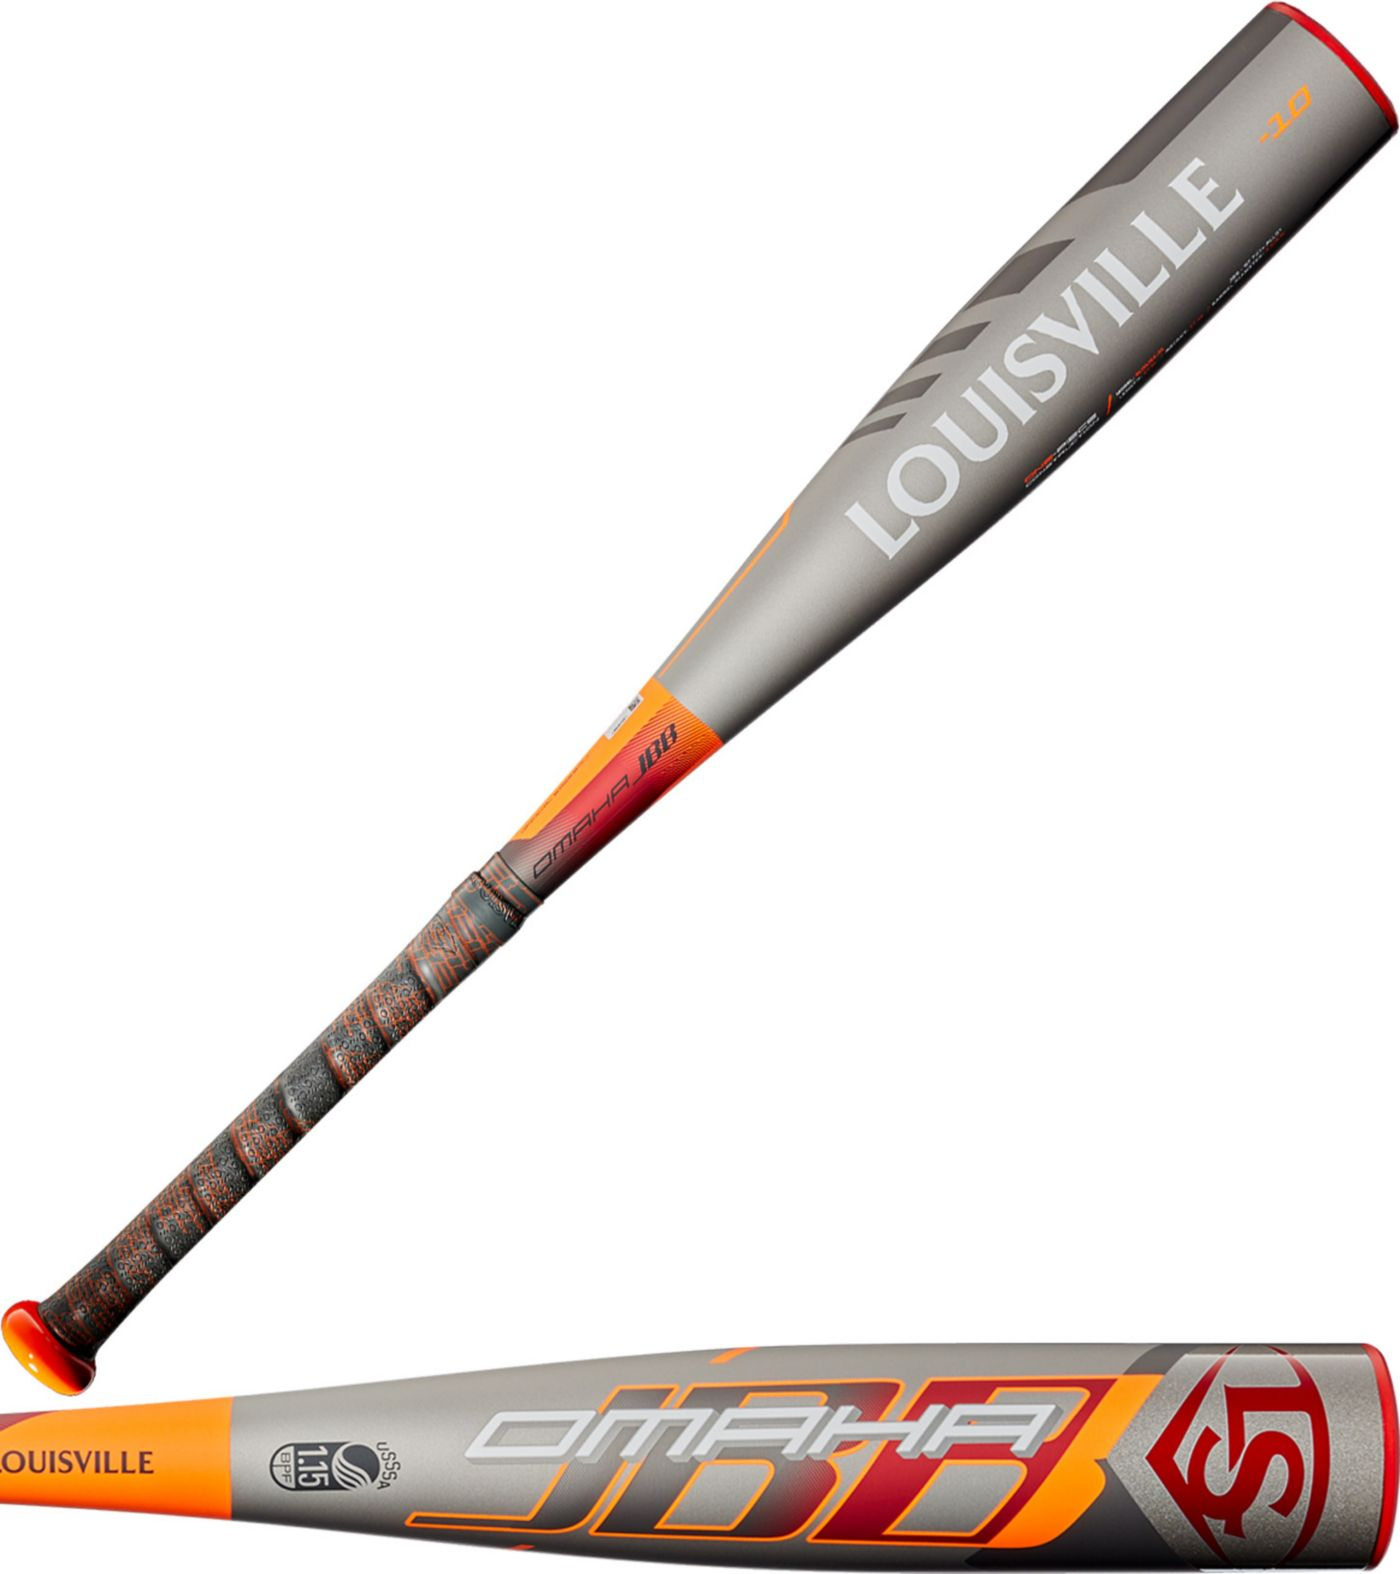 Louisville Slugger Omaha USSSA Jr. Big Barrel Bat 2020 (-10)